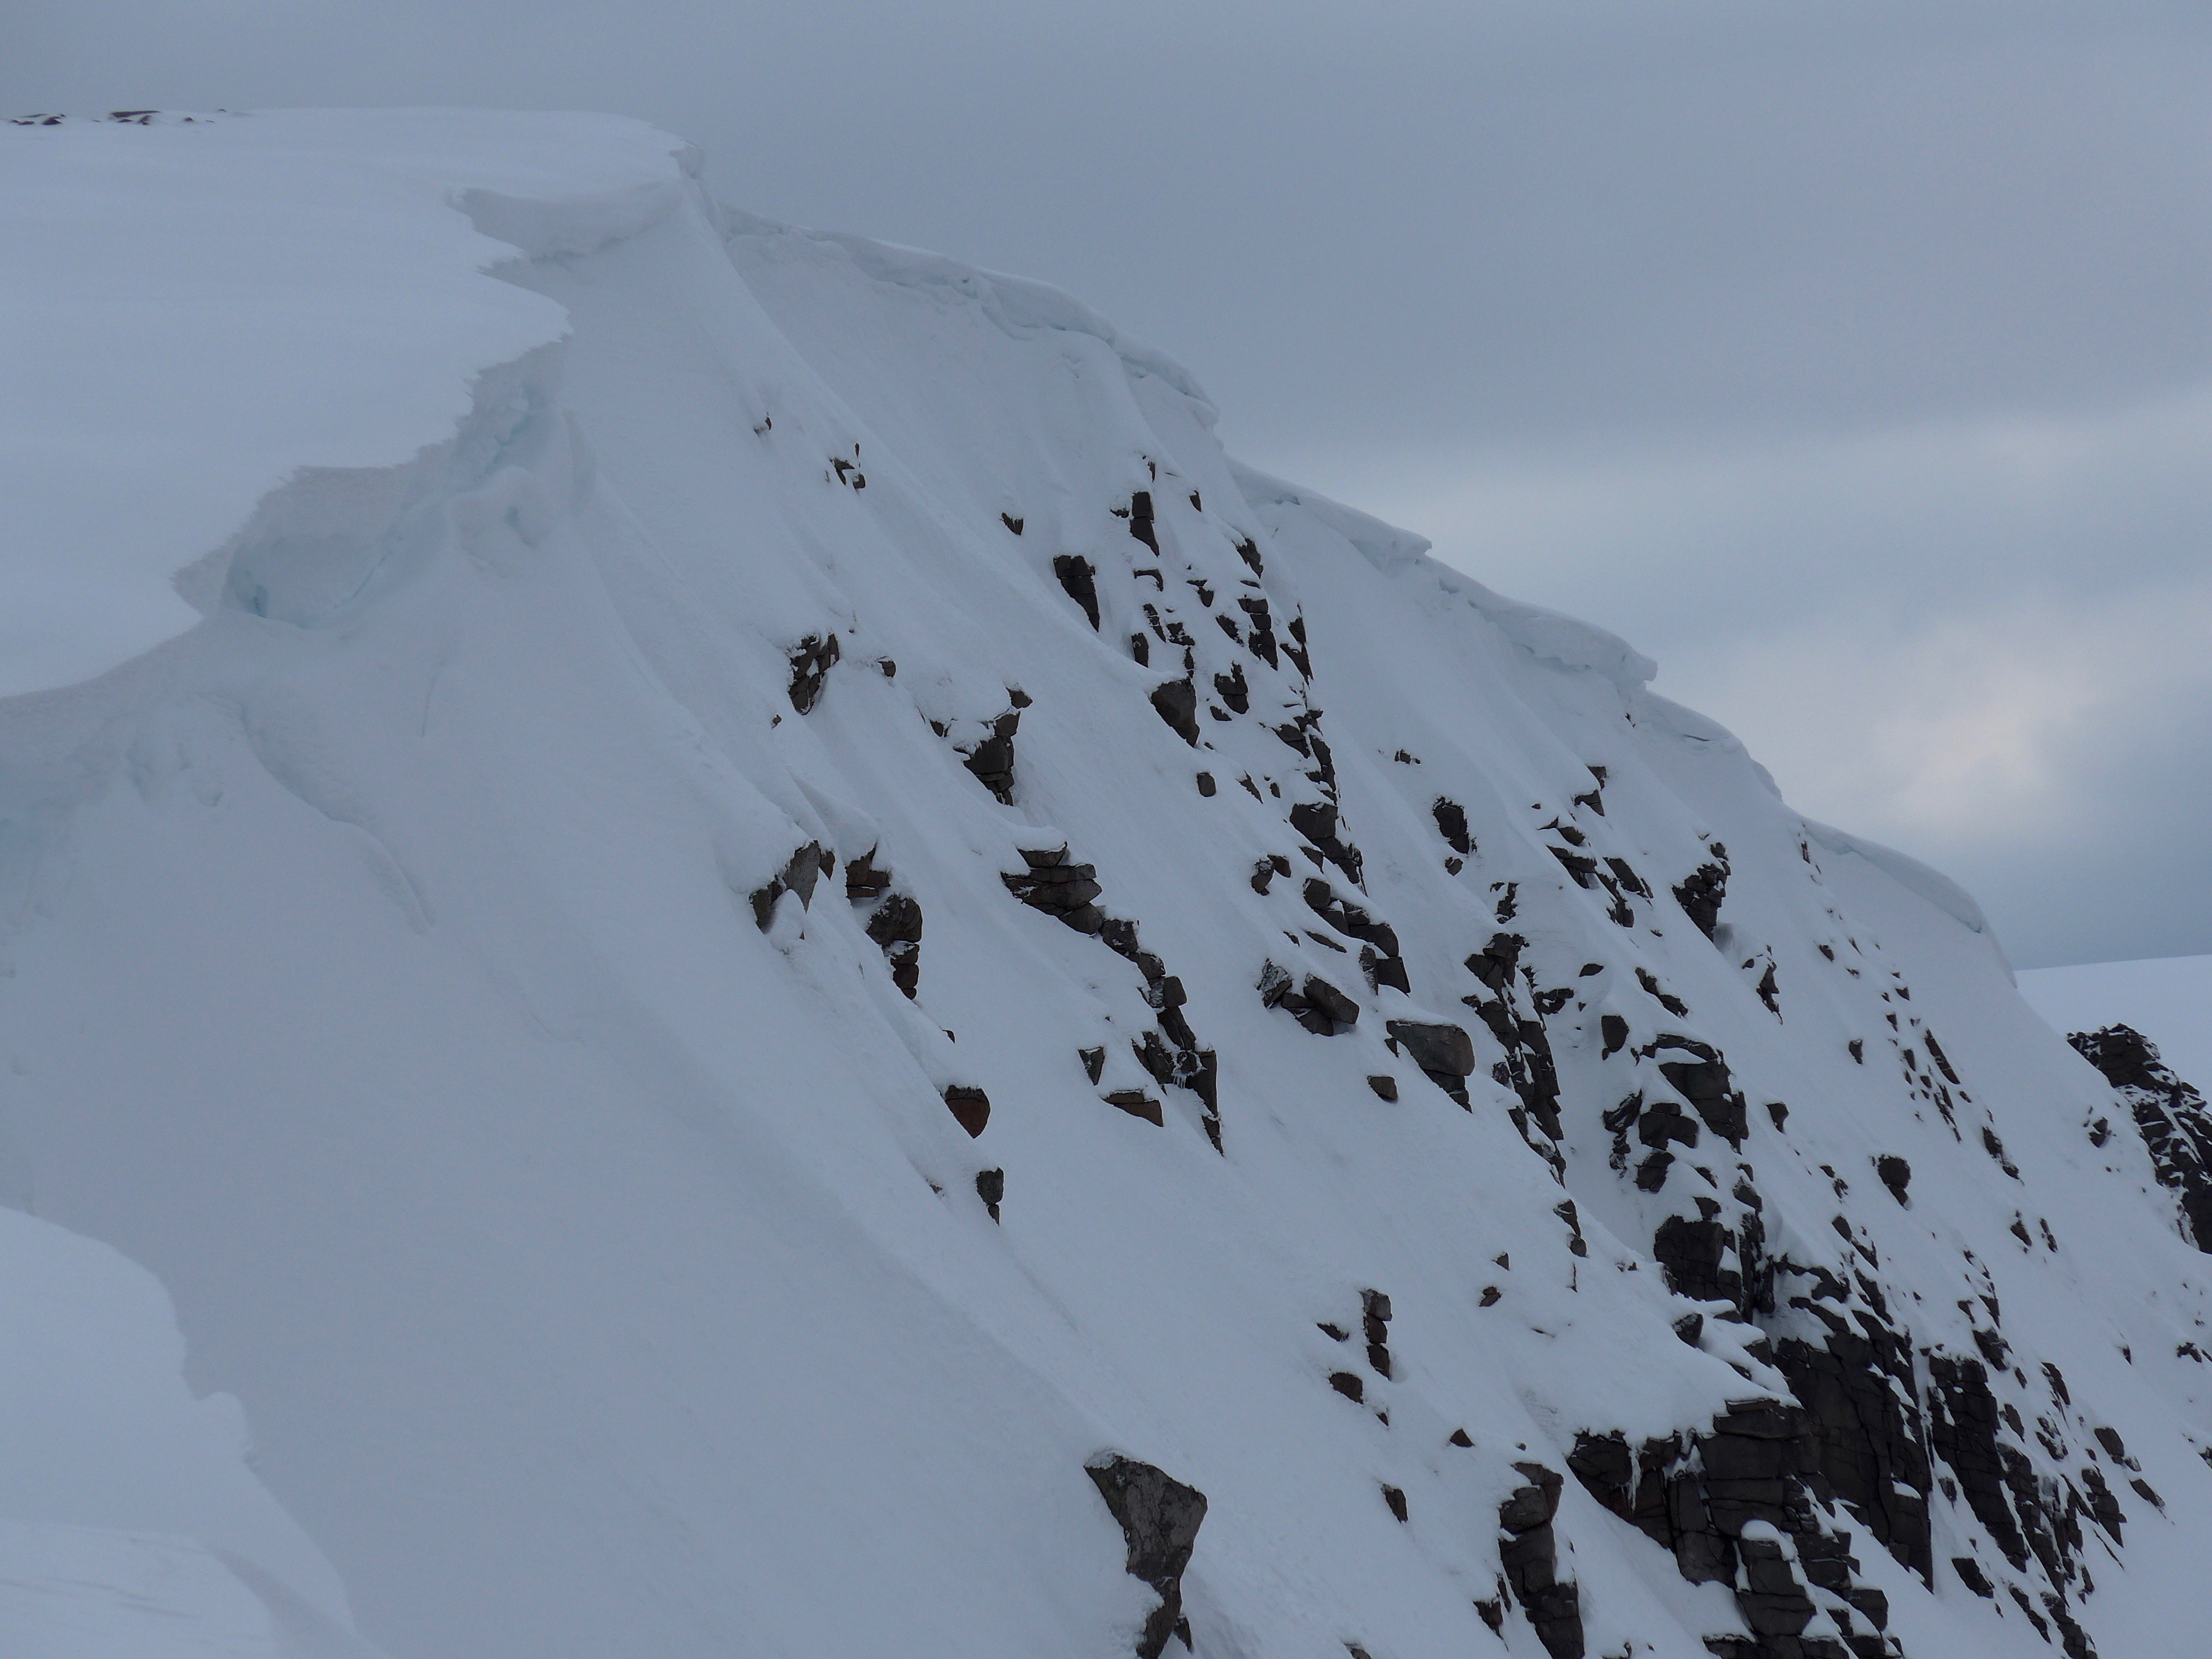 Cornices overhang many Northerly slopes